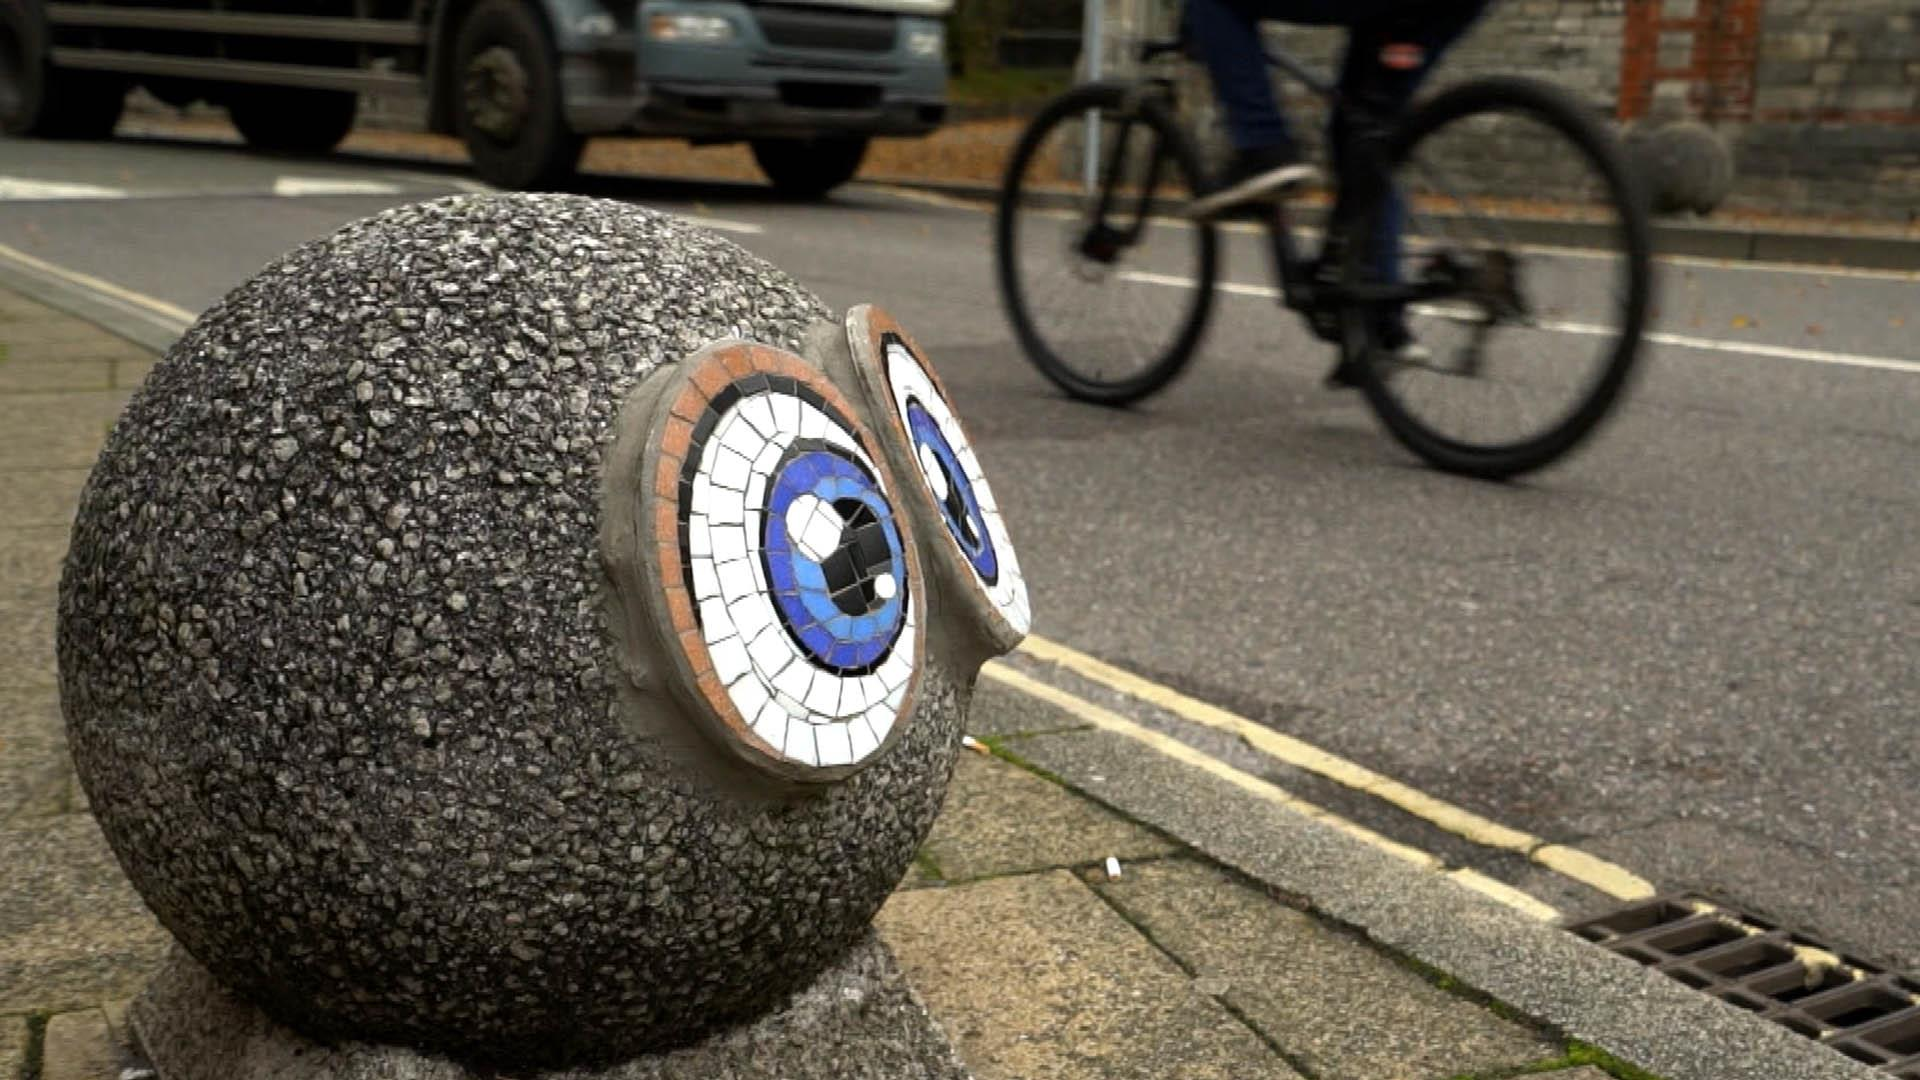 Guerrilla tiler transforms walls with ceramics in Southampton, England